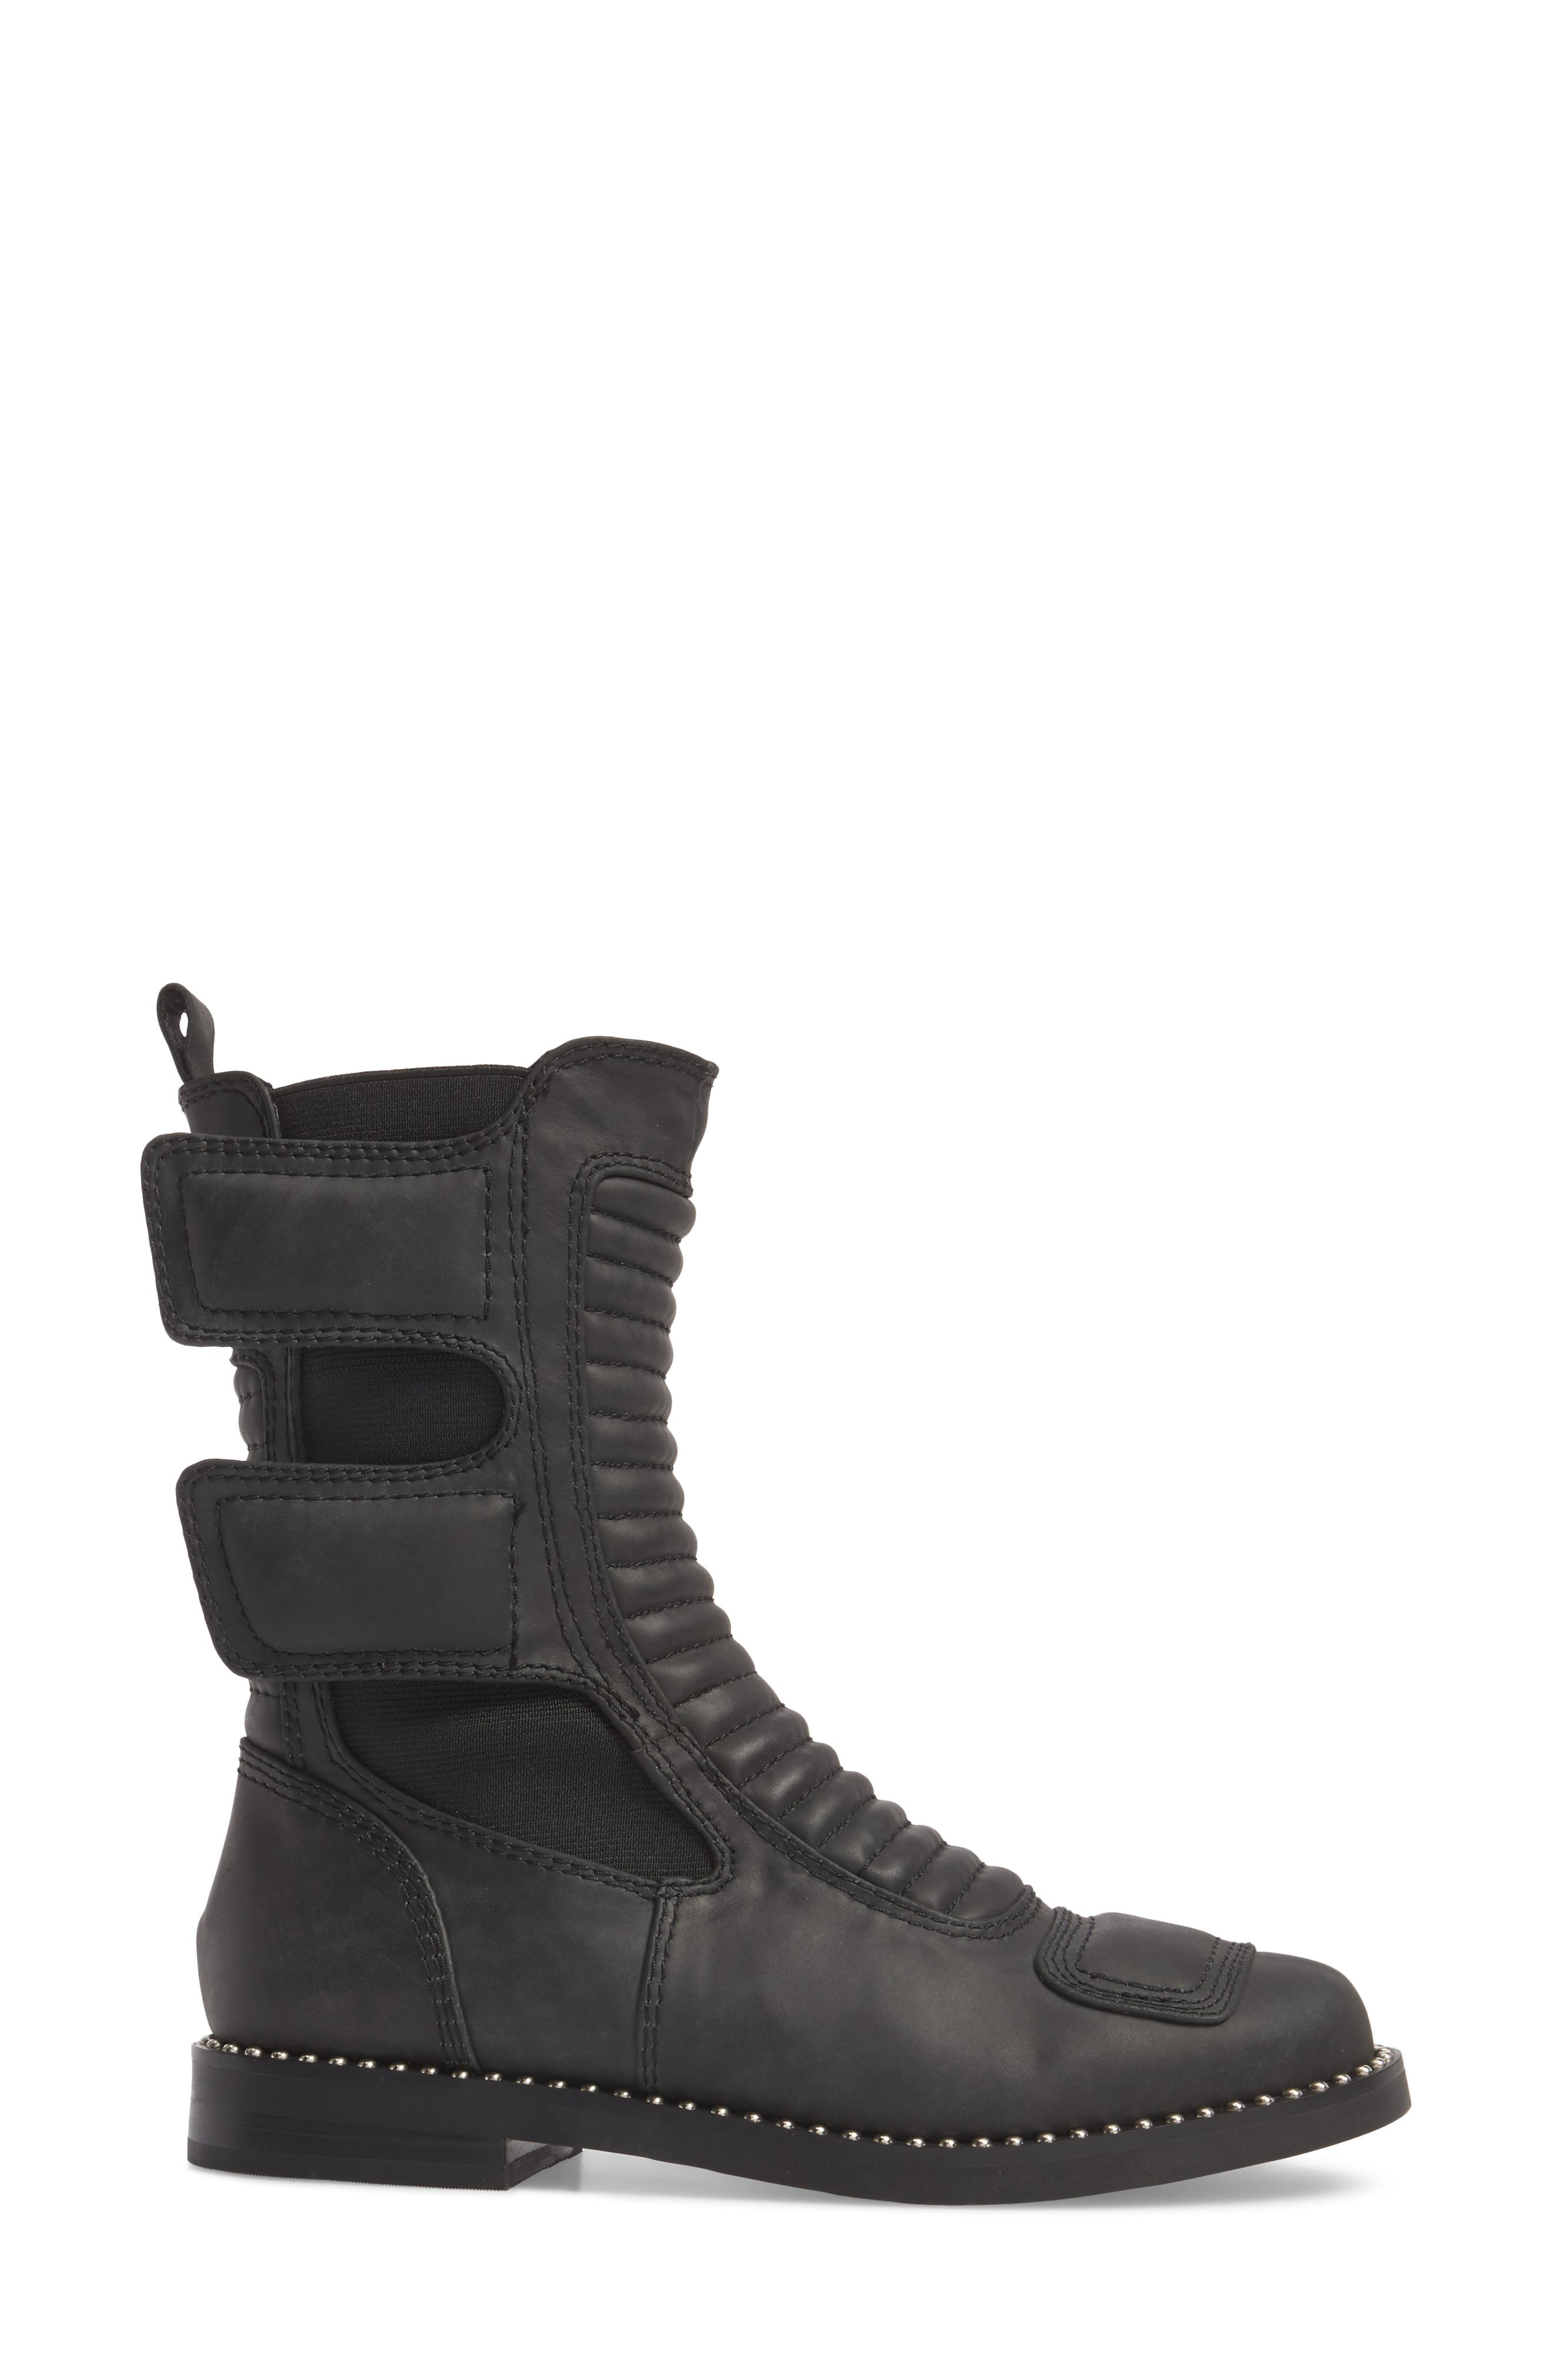 Police Boot,                             Alternate thumbnail 3, color,                             001